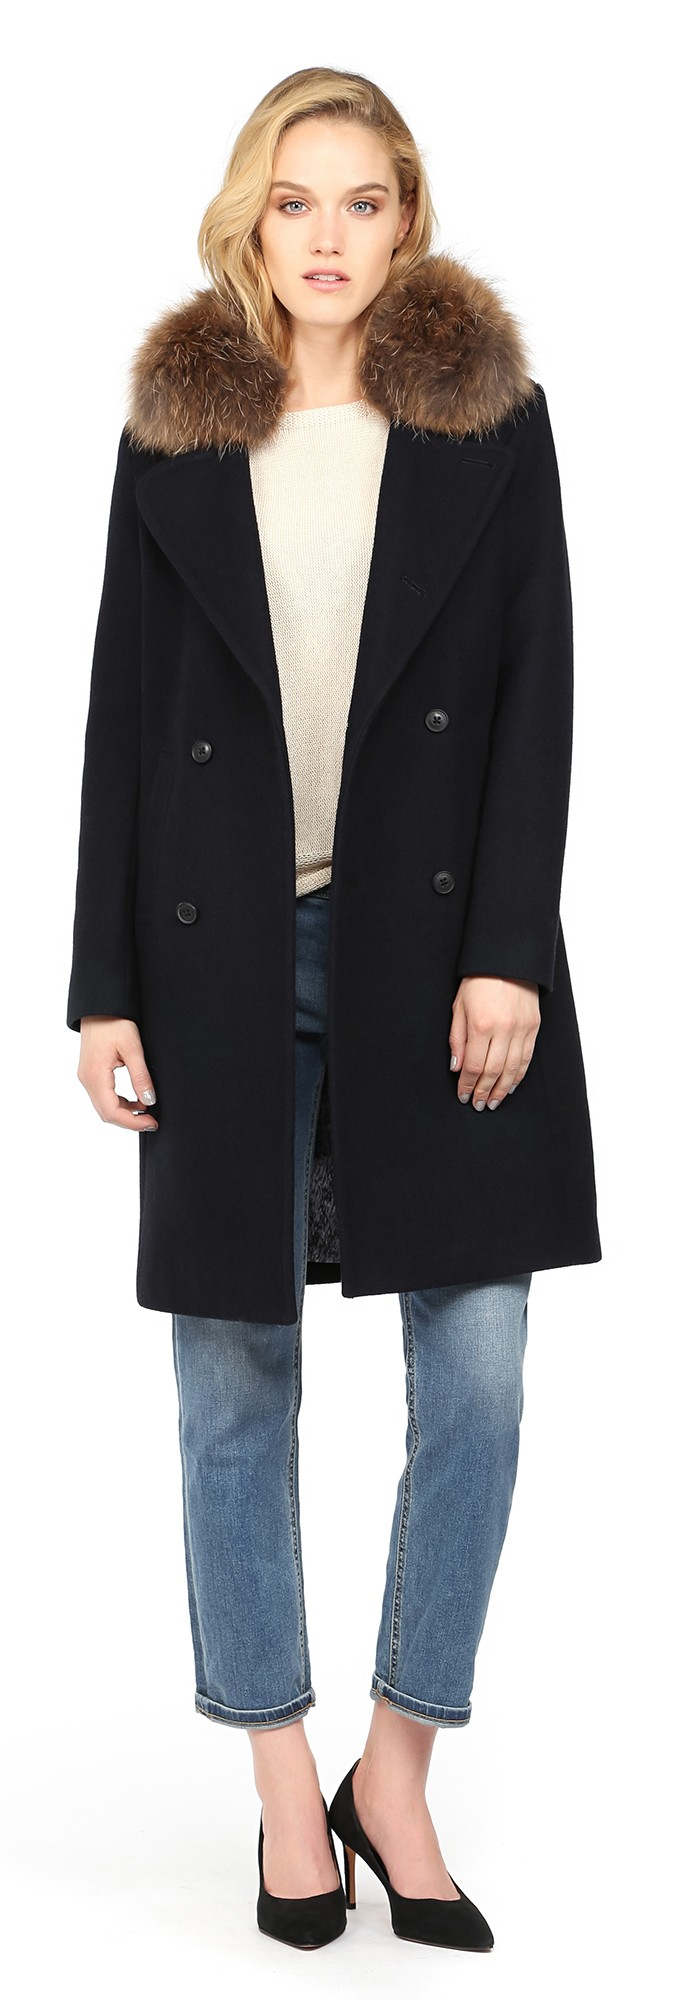 Old Navy coats feature the timeless classics and trendy styles you'll love. Everyone in the family can wrap up in a new coat at an affordable price. We feature hooded winter coats, wool-blend coats, denim coats, trench coats and more.